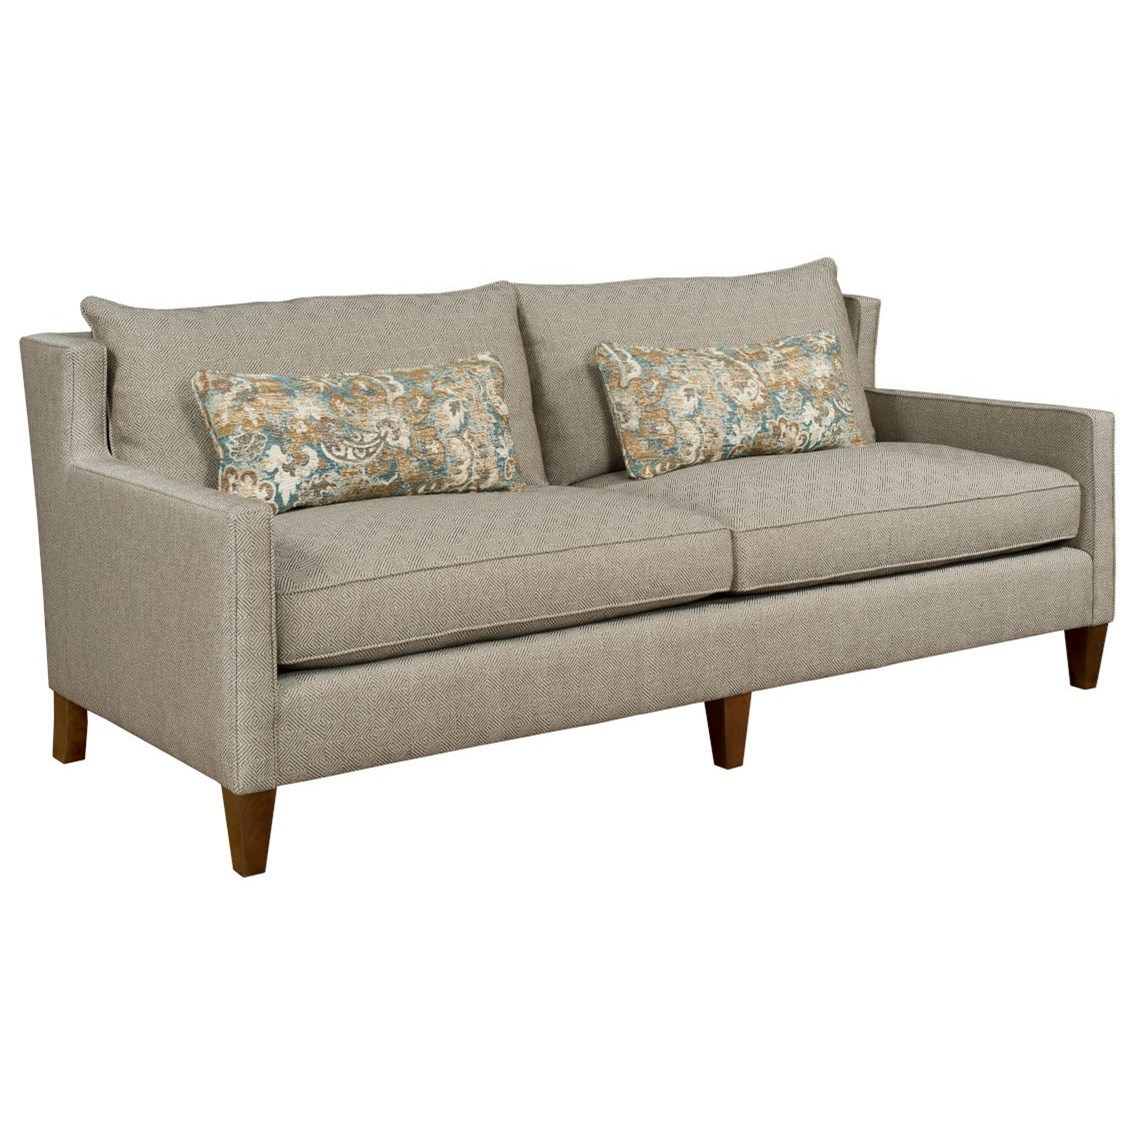 Alta Sofa by Kincaid Furniture at Wilson's Furniture